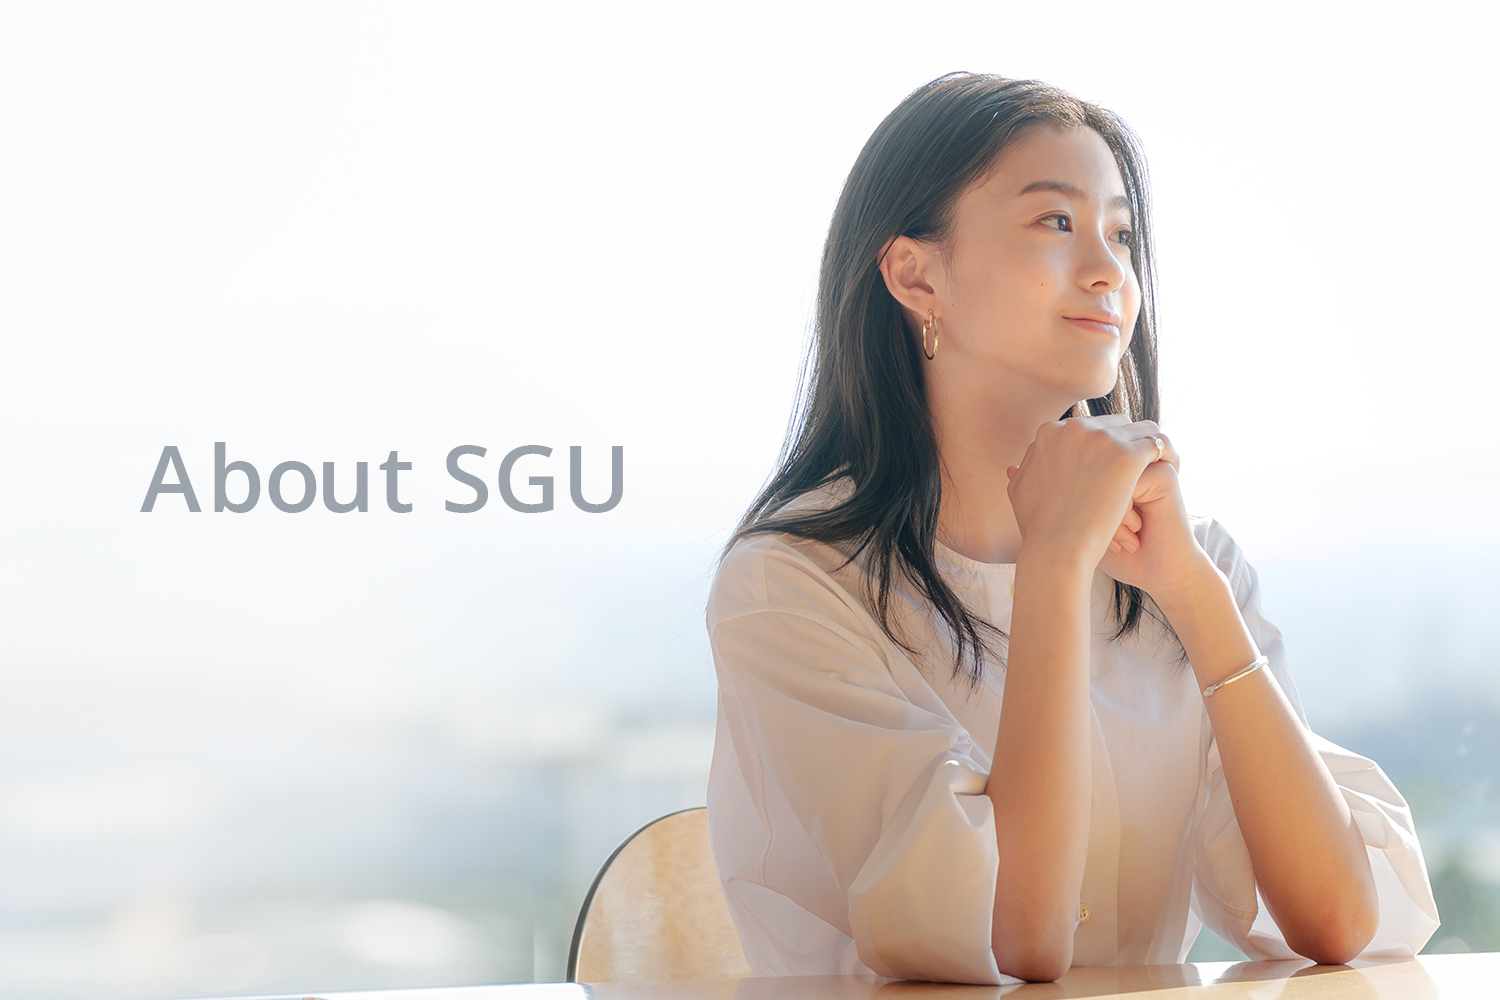 About SGU